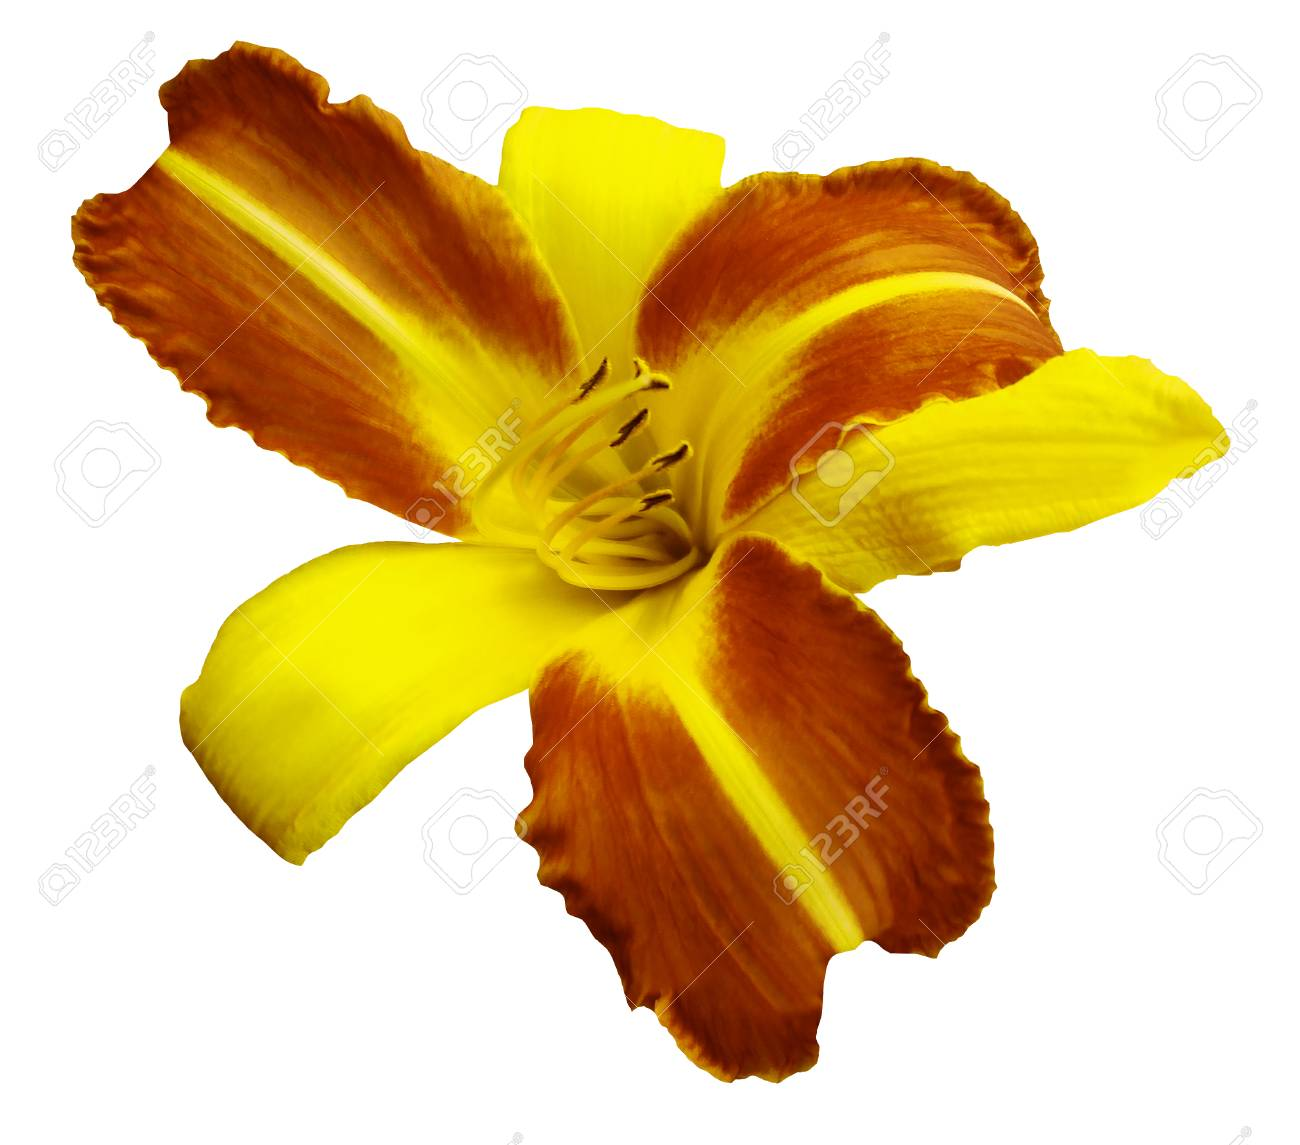 Yellow Orange Flower Lily On White Isolated Background With Stock